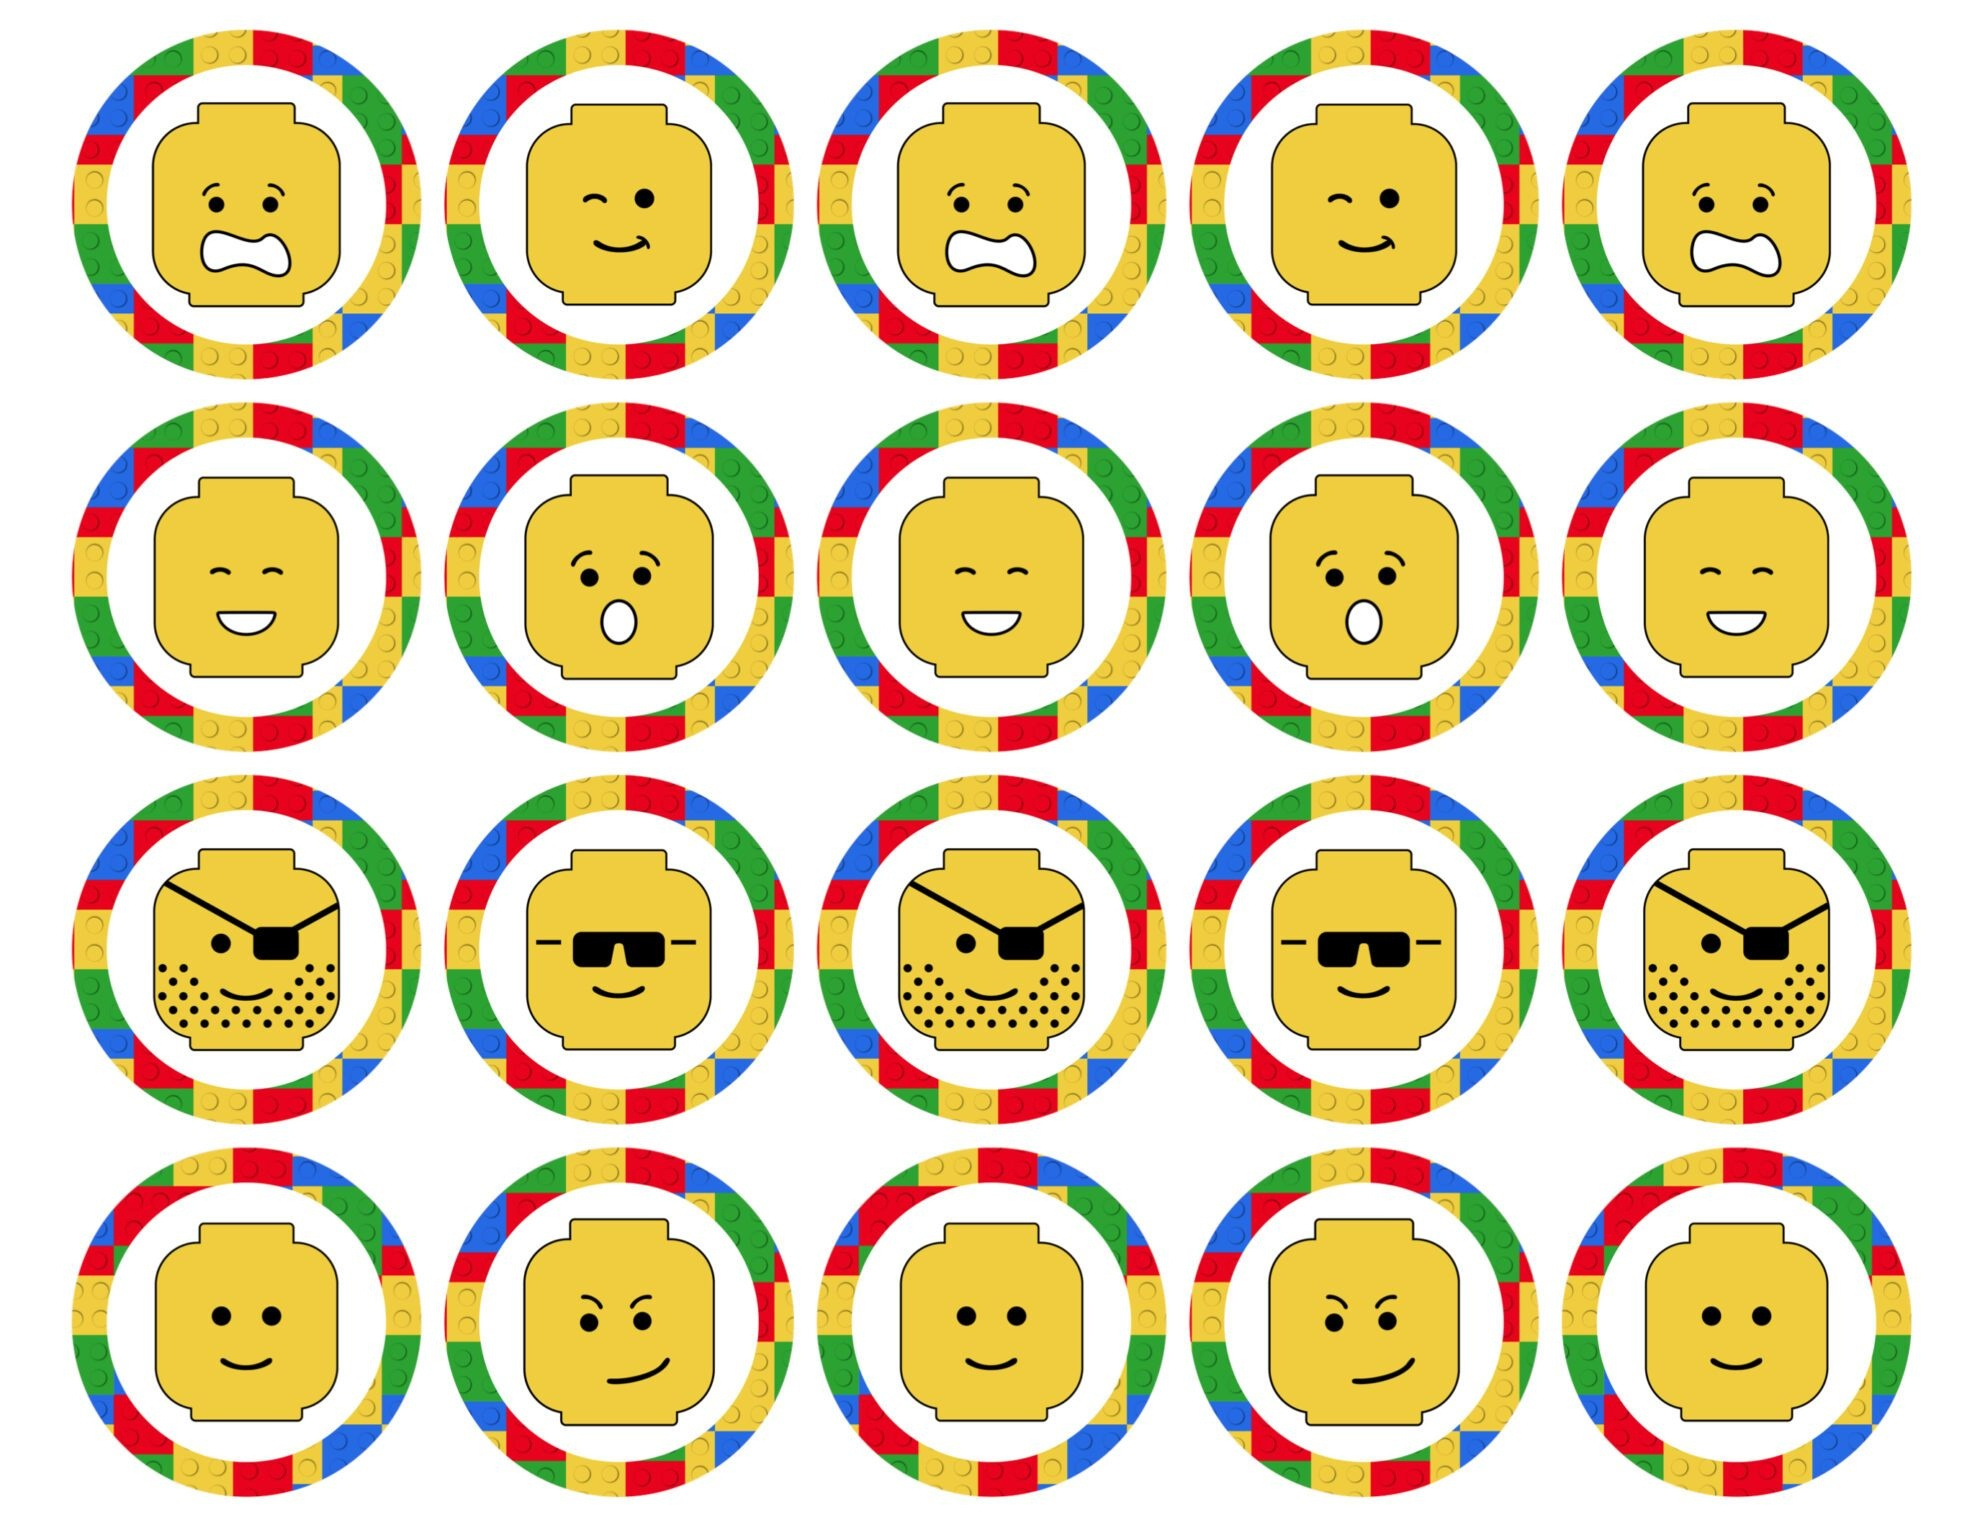 Lego Cupcake Toppers Printable - Paper Trail Design - Free Printable Lego Cupcake Toppers